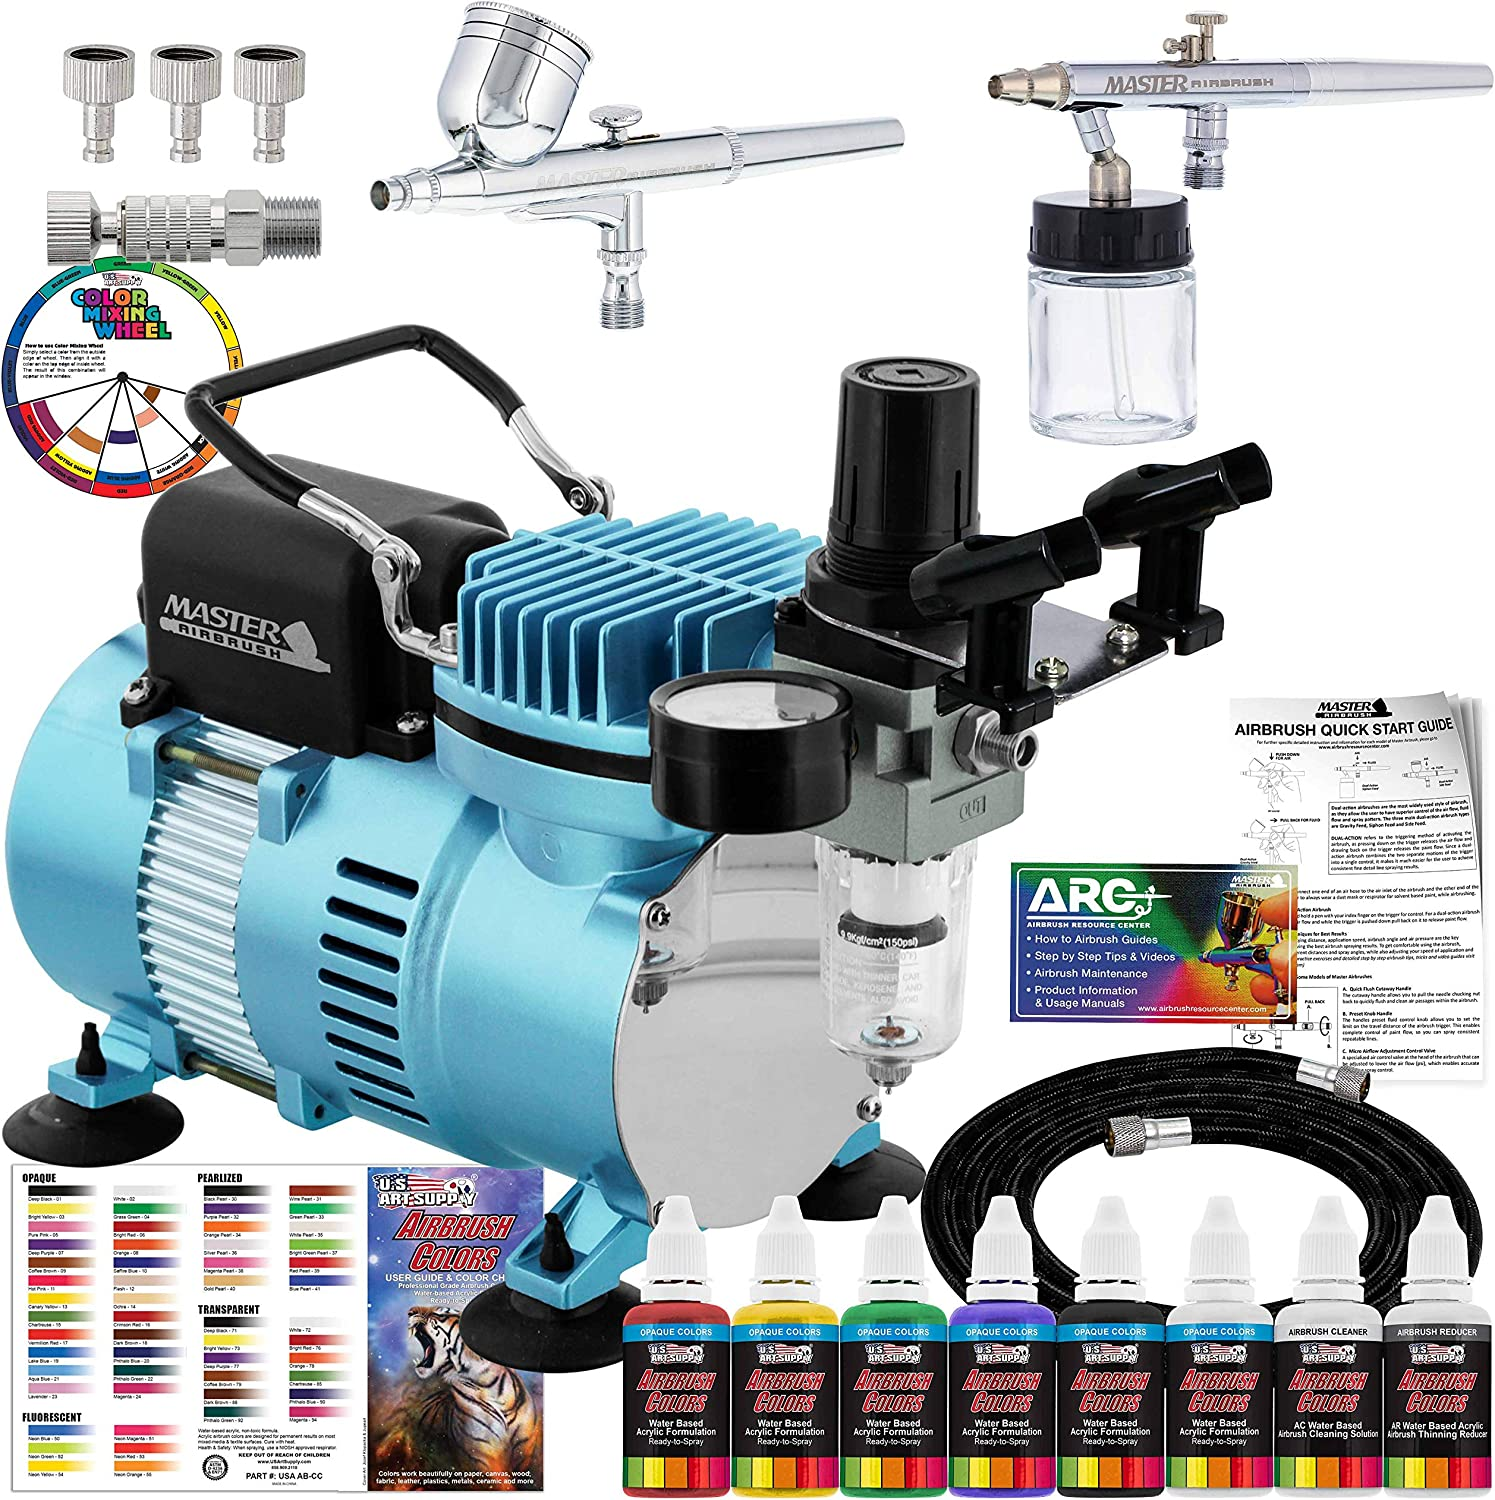 Master Airbrush Cool Runner II Dual Fan Air Compressor Airbrushing Acrylic Paint System Kit with 2 Professional Airbrushes, Hose - 6 Primary Acrylic Paint Colors Artist Set - How To Guide, Color Chart